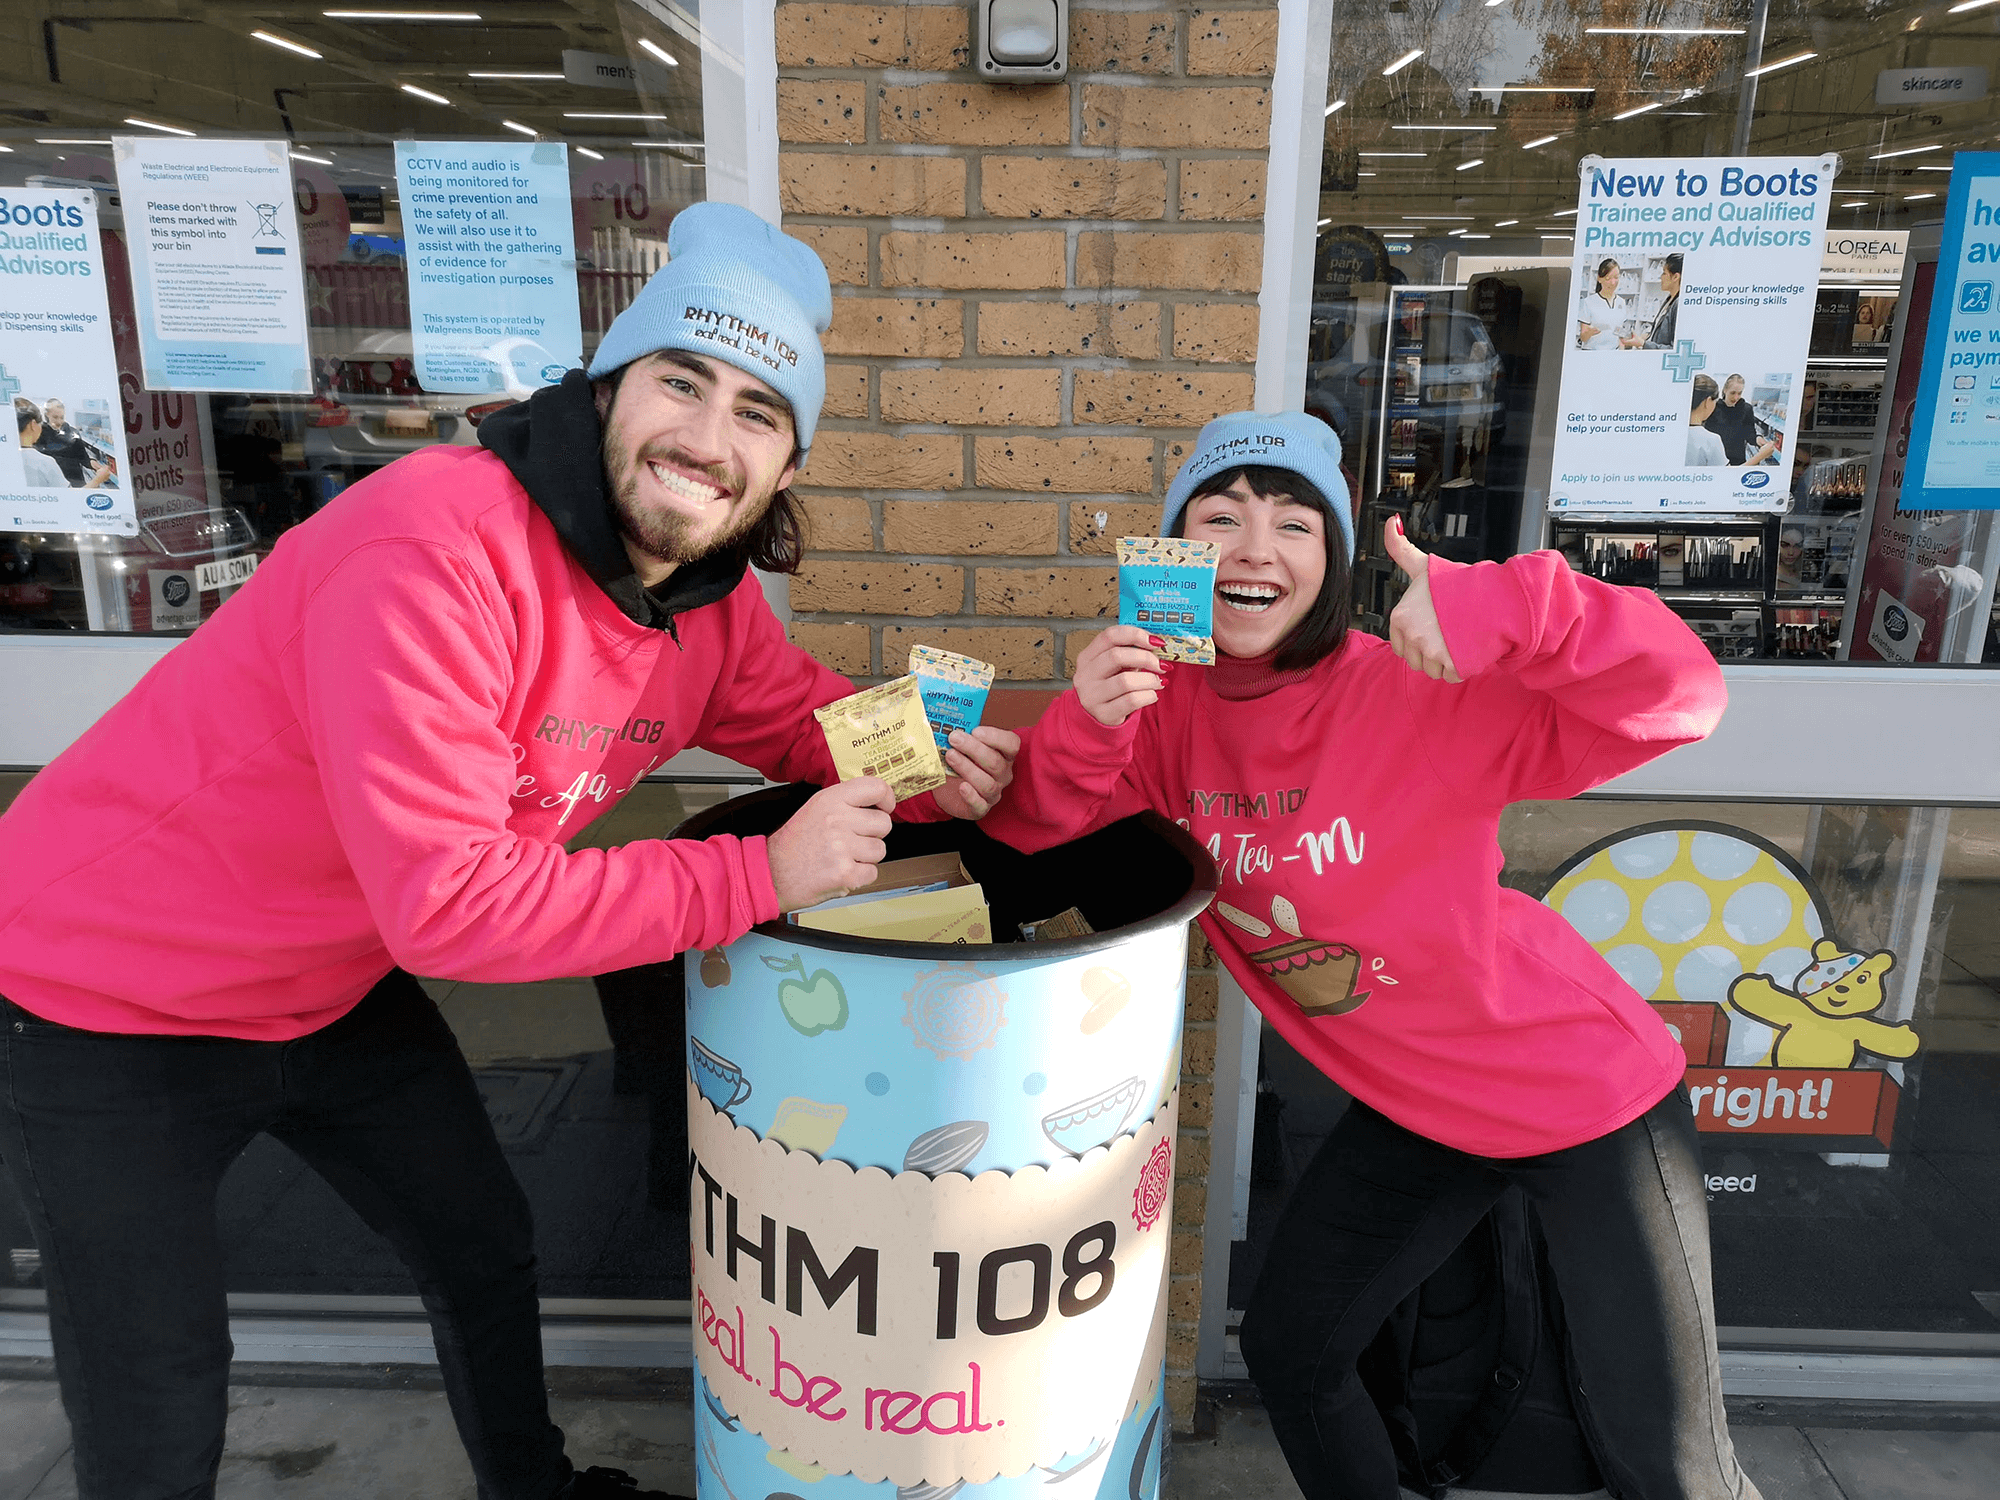 Male and Female brand ambassadors standing outside of Boots store High Holborn. They have a Rhythm108 branded wheelie bin and are giving out free samples of Rhythm108 gluten-free, vegan biscuits to members of the public.